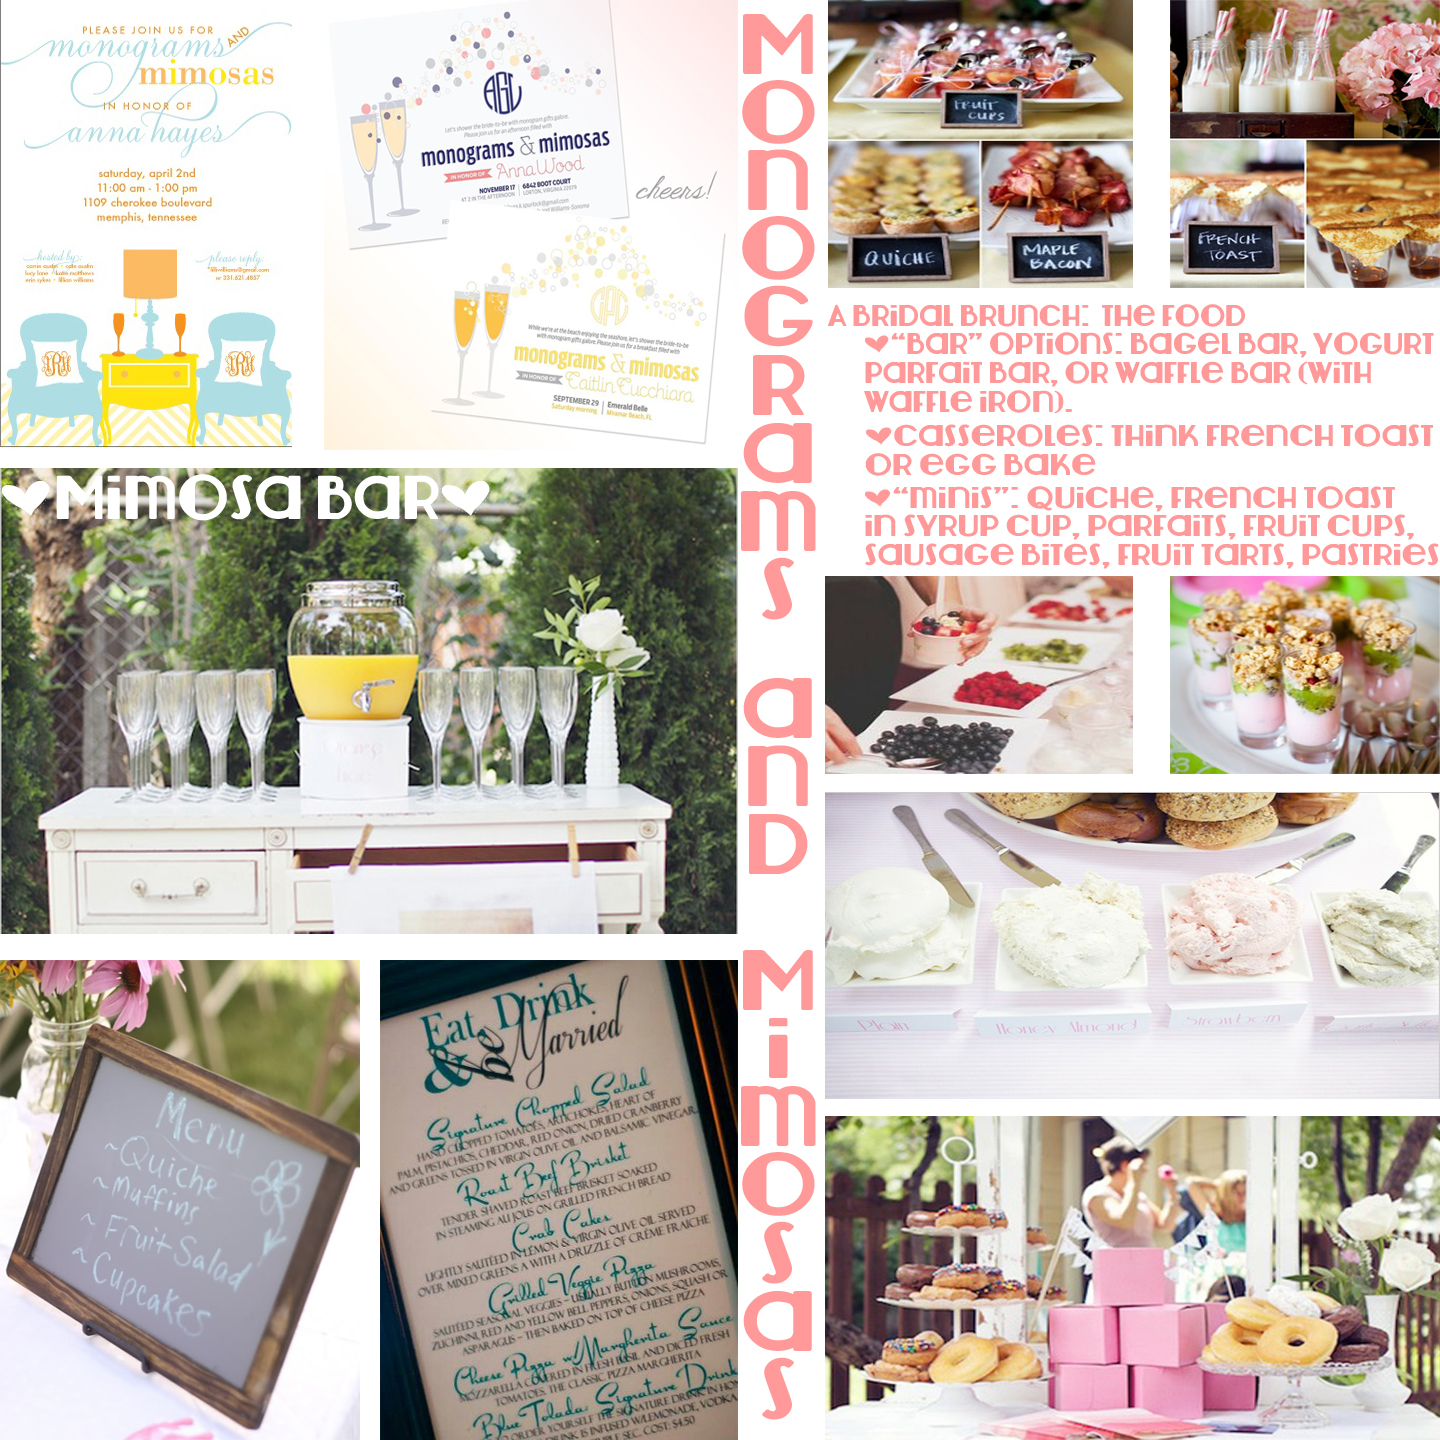 58a5918c3ed0 Planning a Bridal Shower  Why not host a Monograms and Mimosas Bridal Shower   So